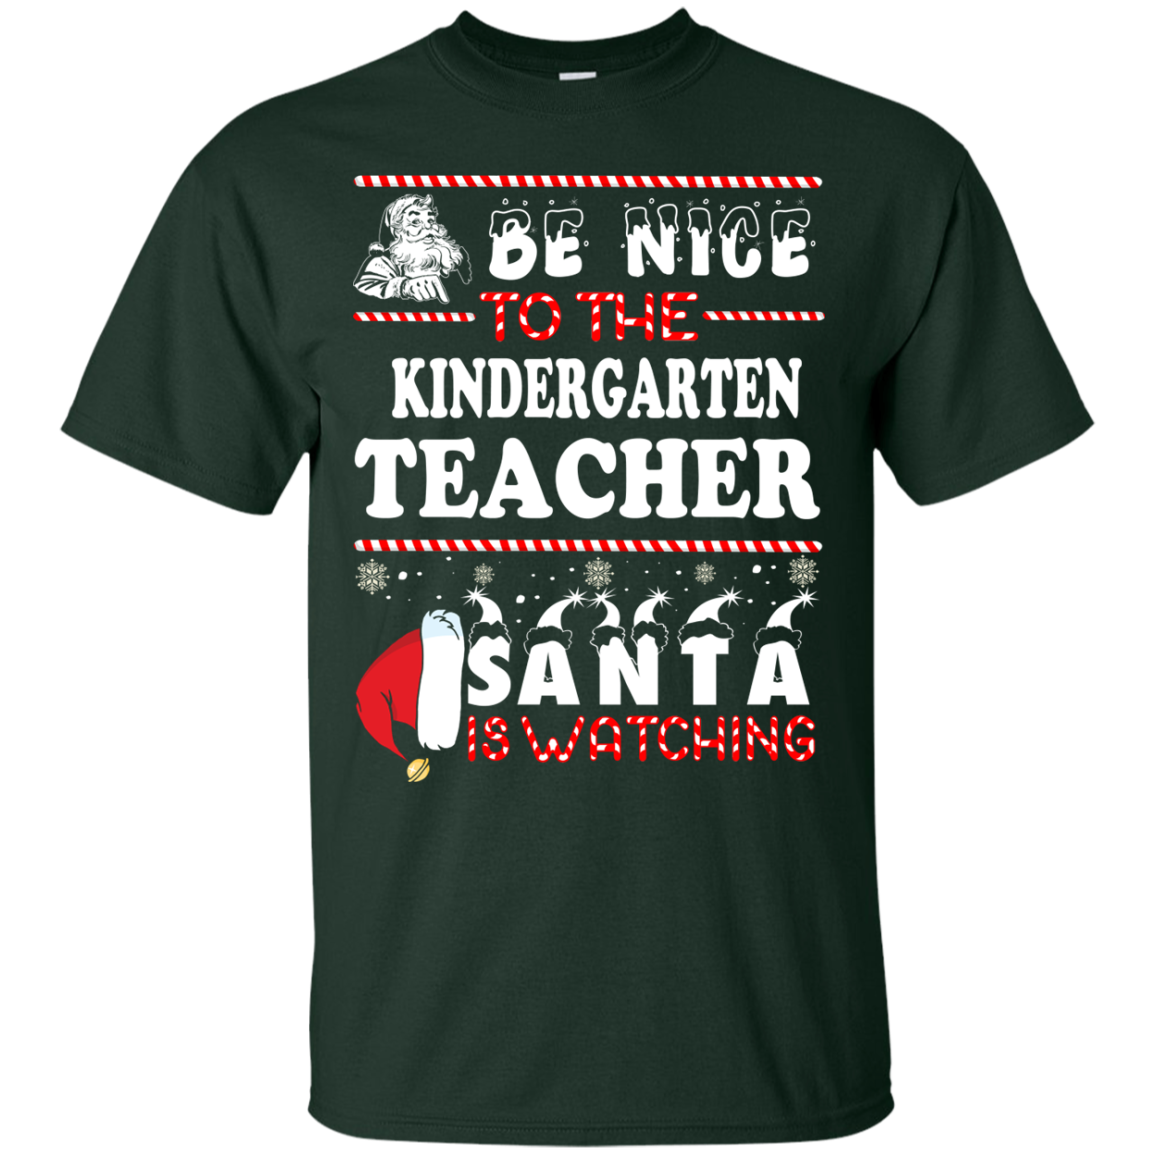 Be Nice To The Kindergarten Teacher Santa Is Watching Sweatshirt, T-Shirt